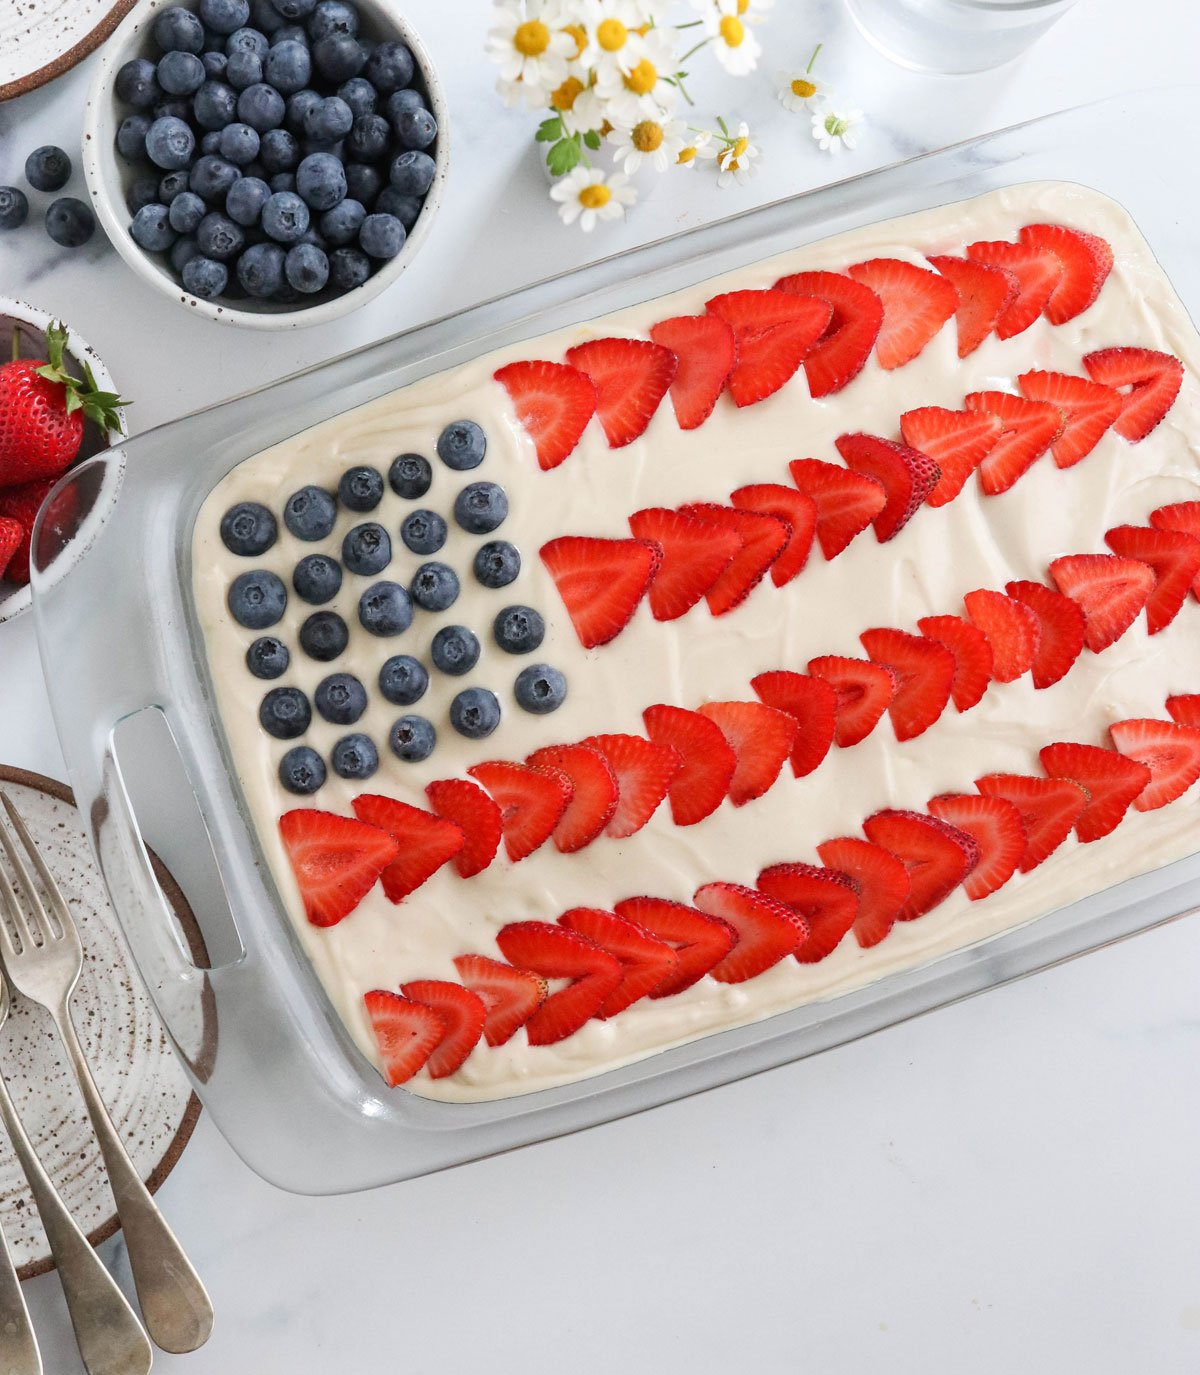 finished flag cake by bowl of berries